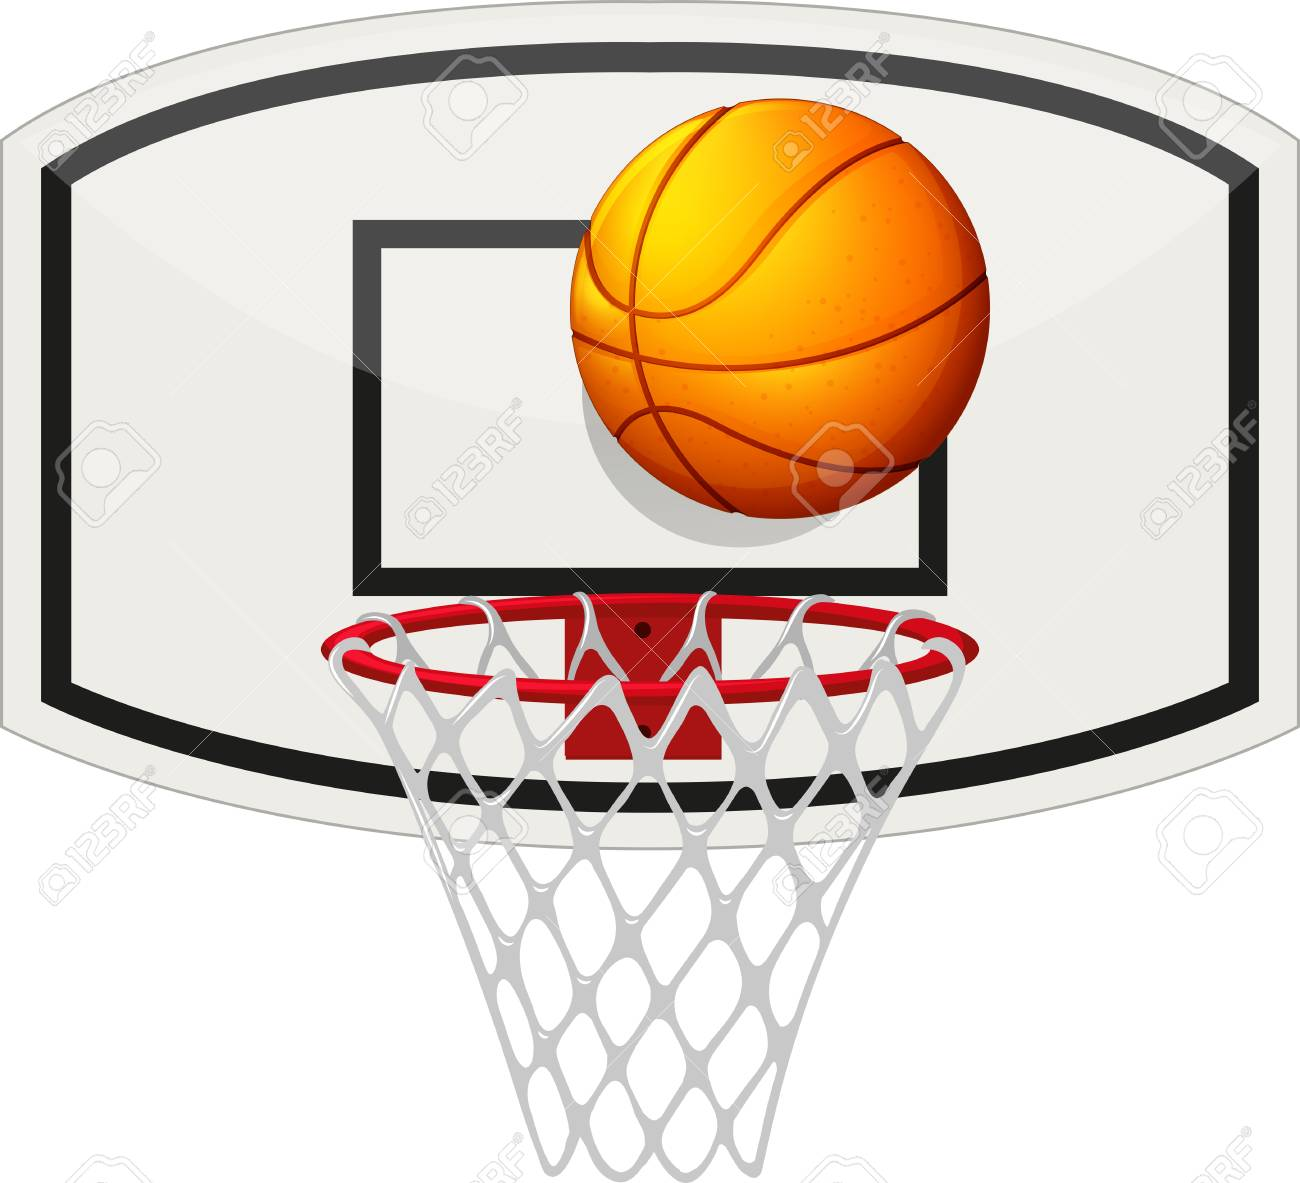 Basketball Net And Ball Clipart.